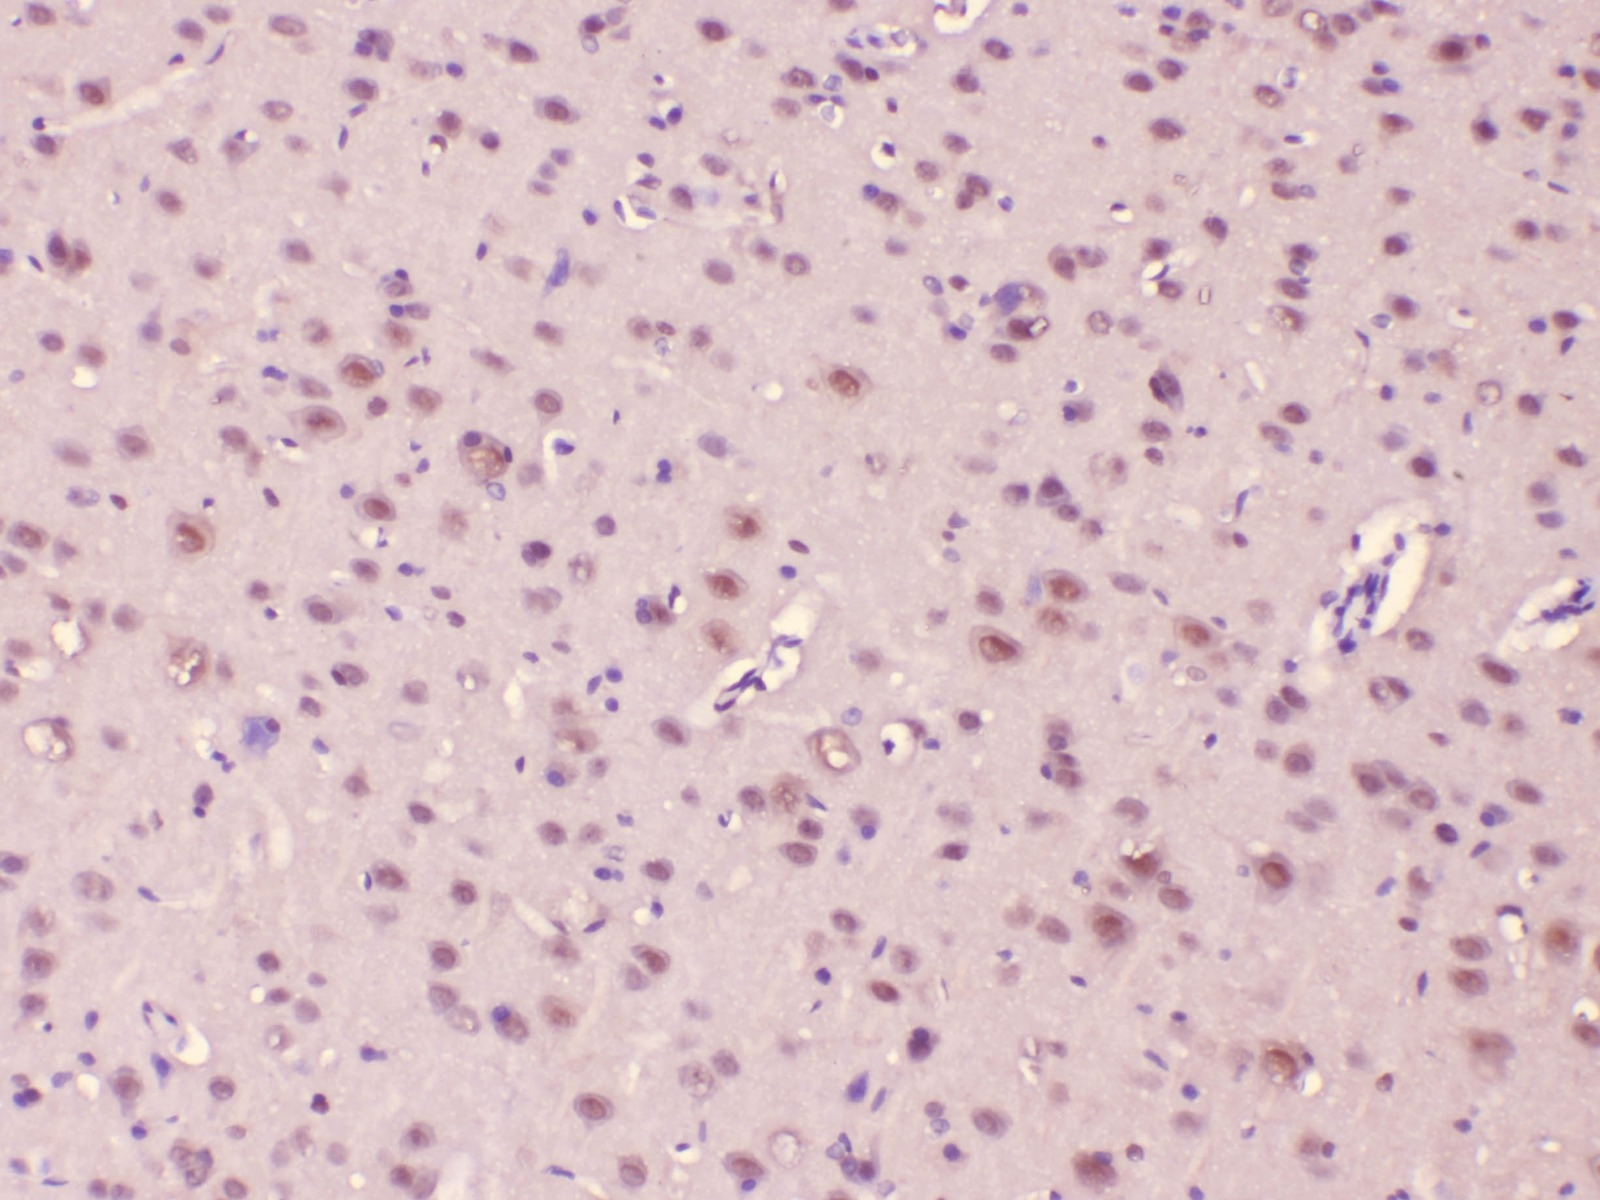 improved staining of rat brain tissue using Boster troubleshooting tips